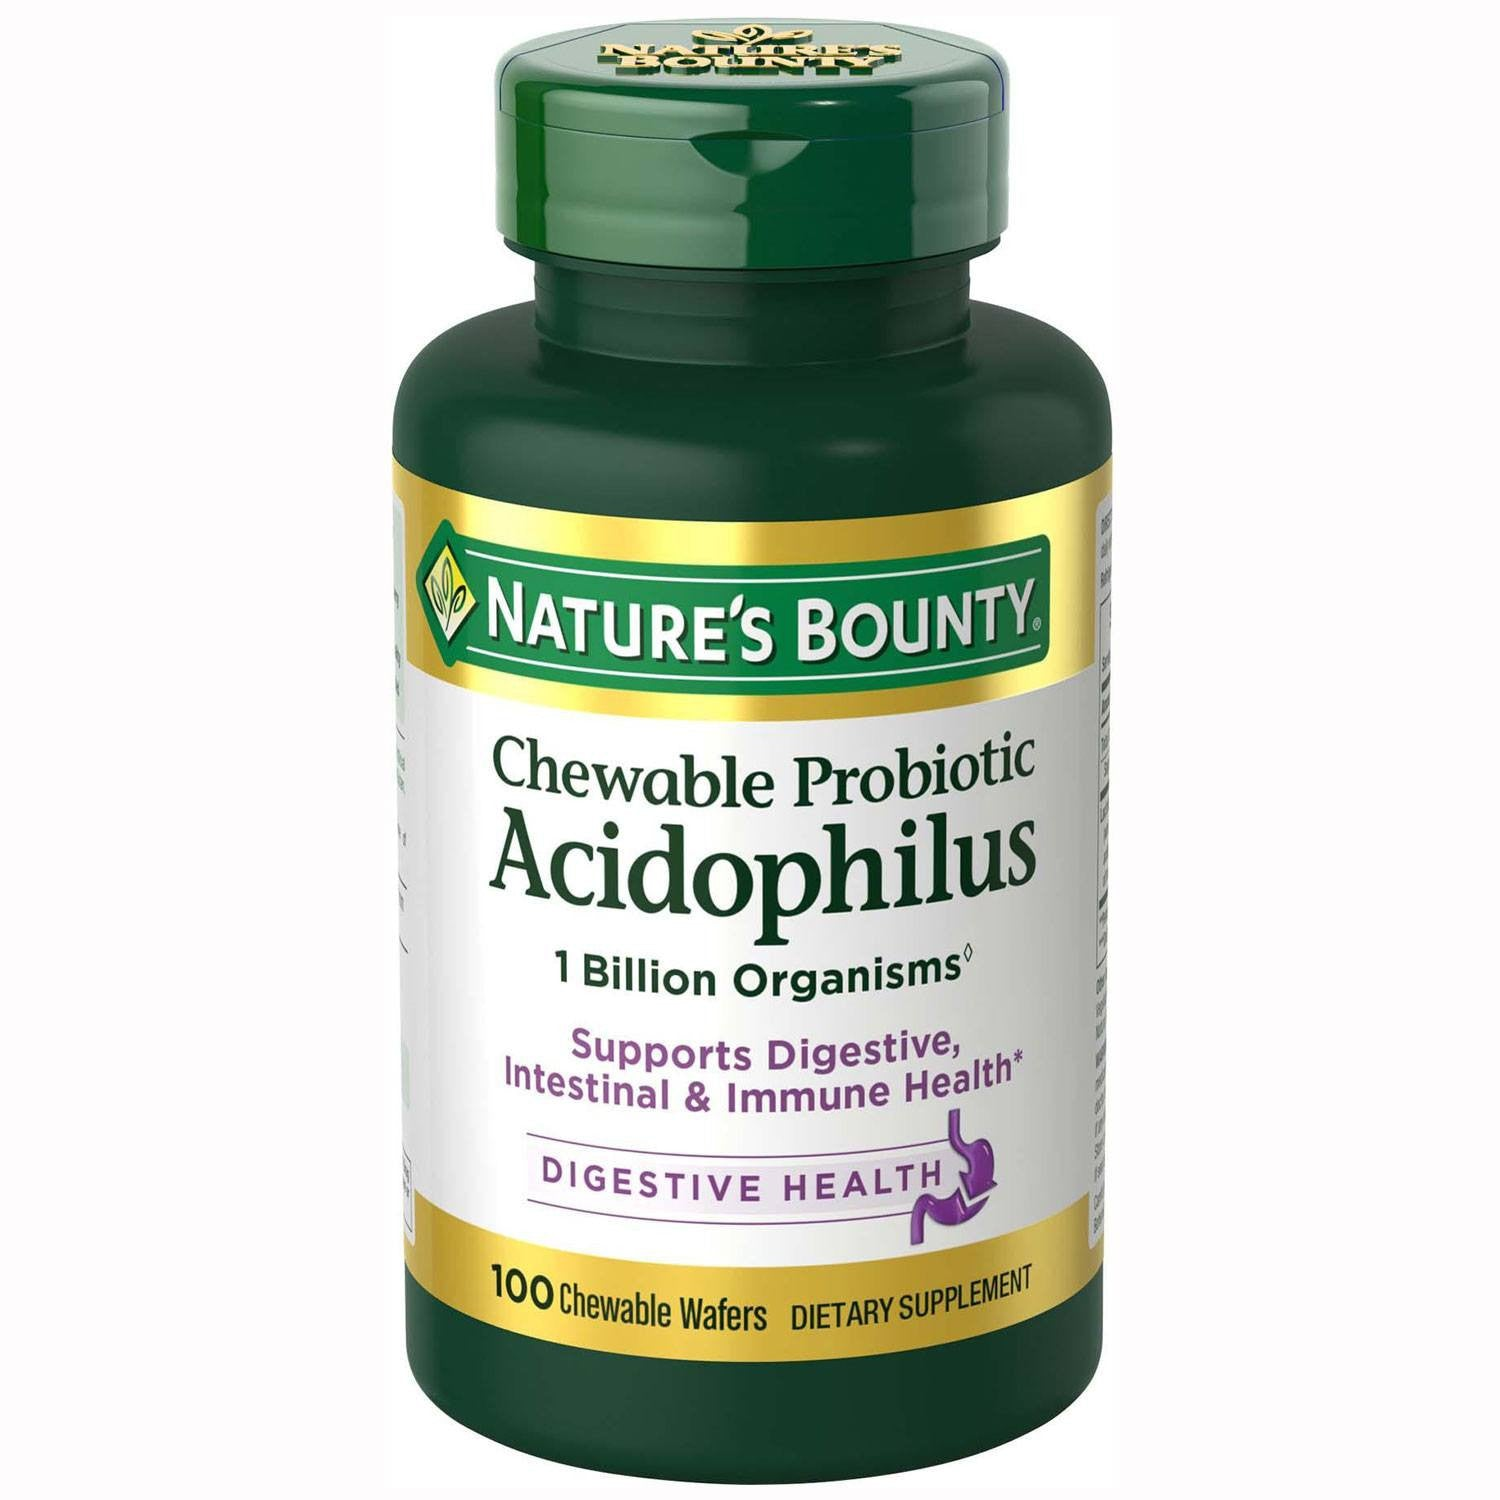 Buy Chewable Probiotic Acidophilus, Strawberry Flavor by Nature